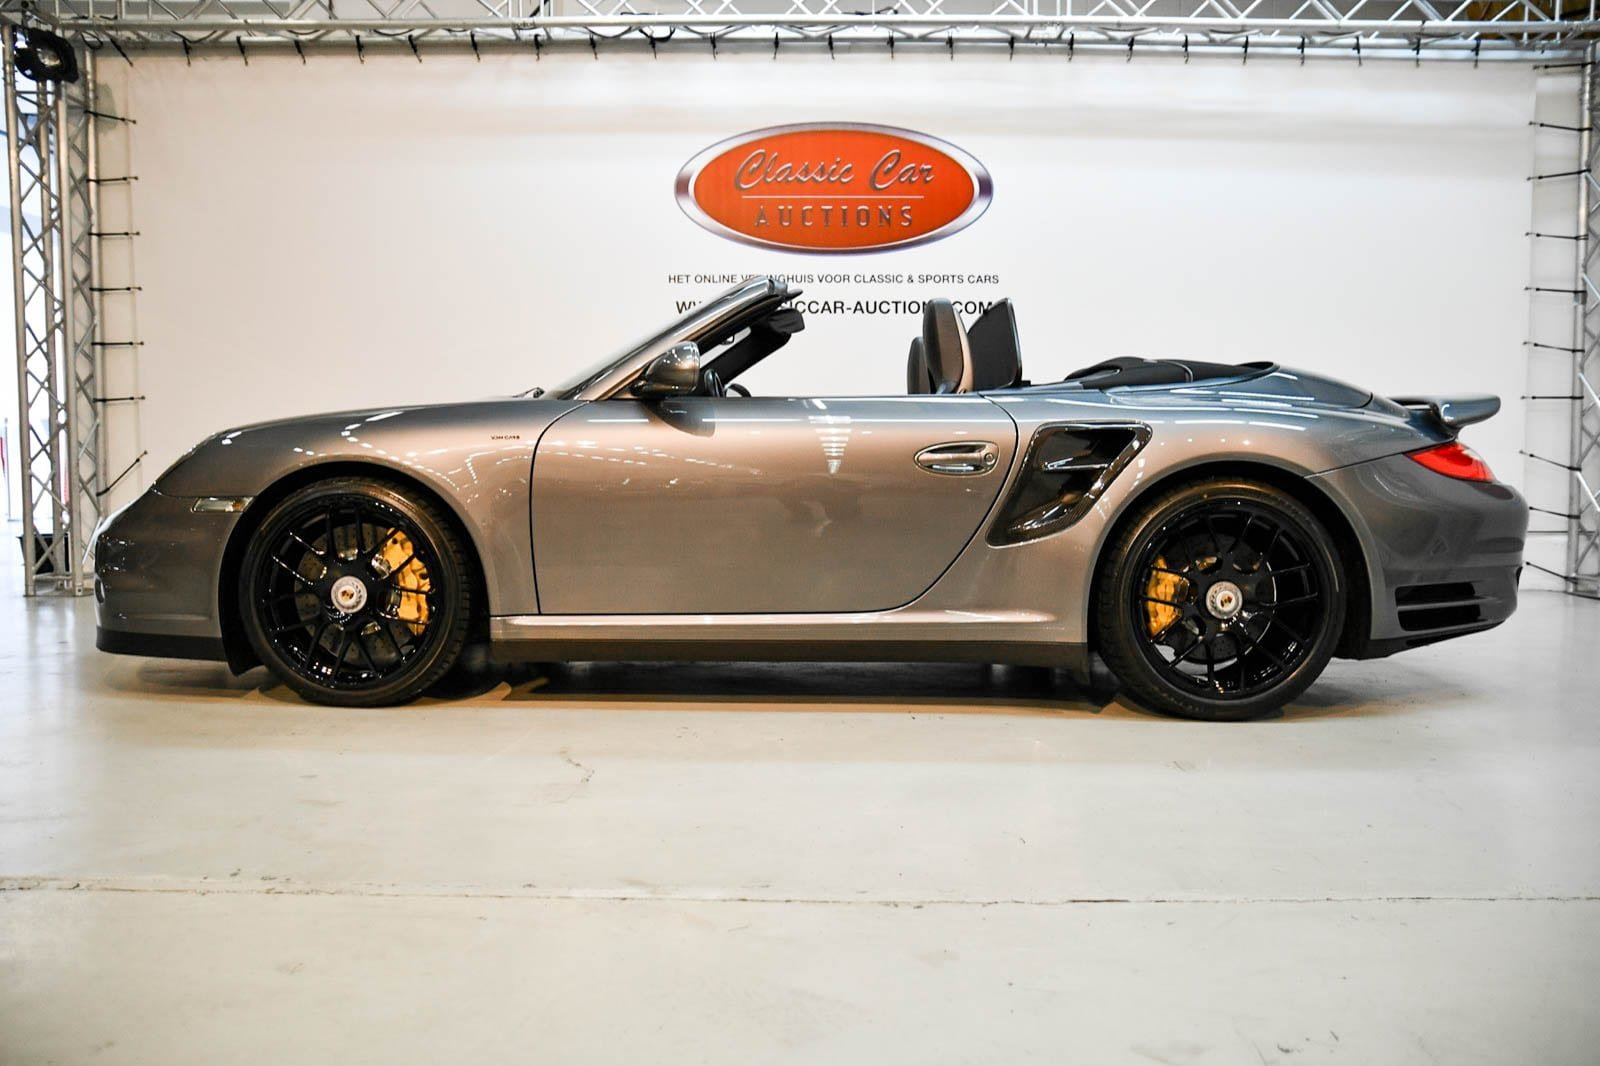 Porsche 911 type 997 2 turbo 2010 For Sale by Auction (picture 4 of 6)